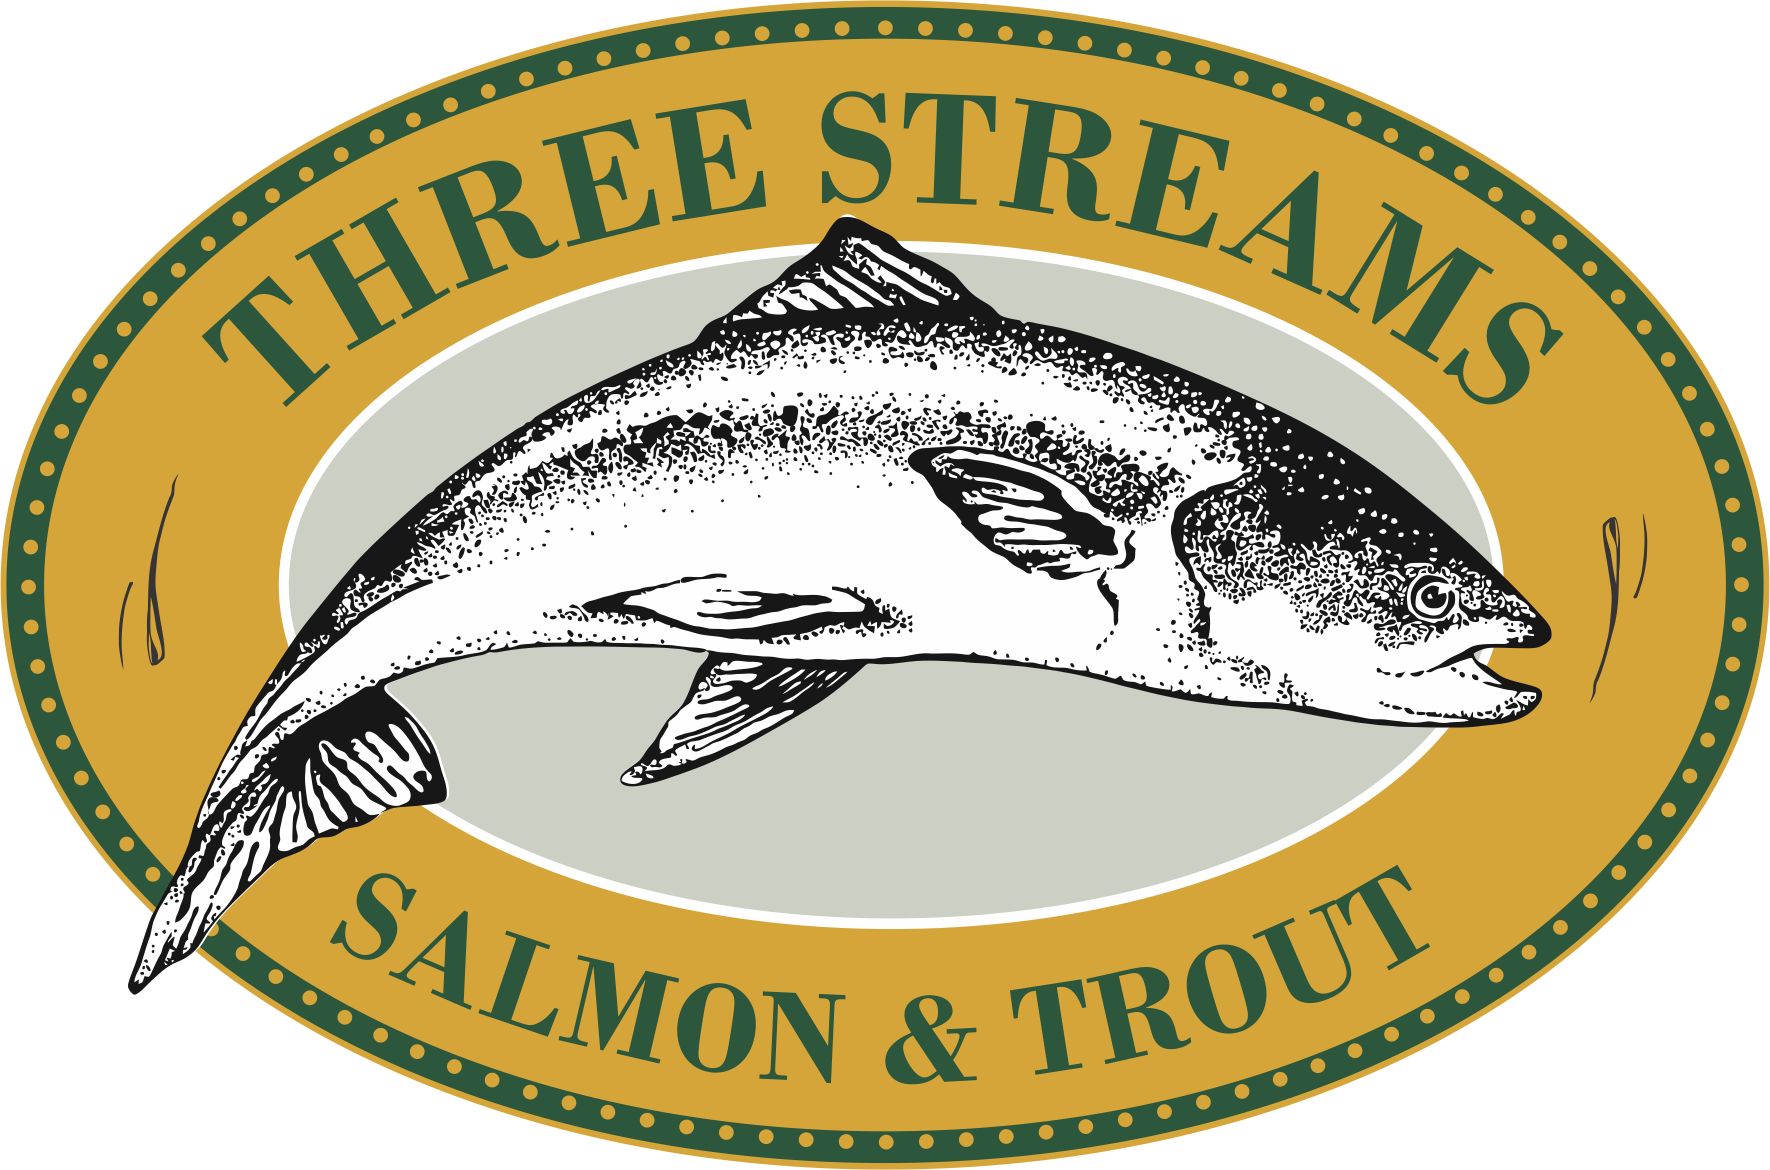 Copy of salmon and trout png